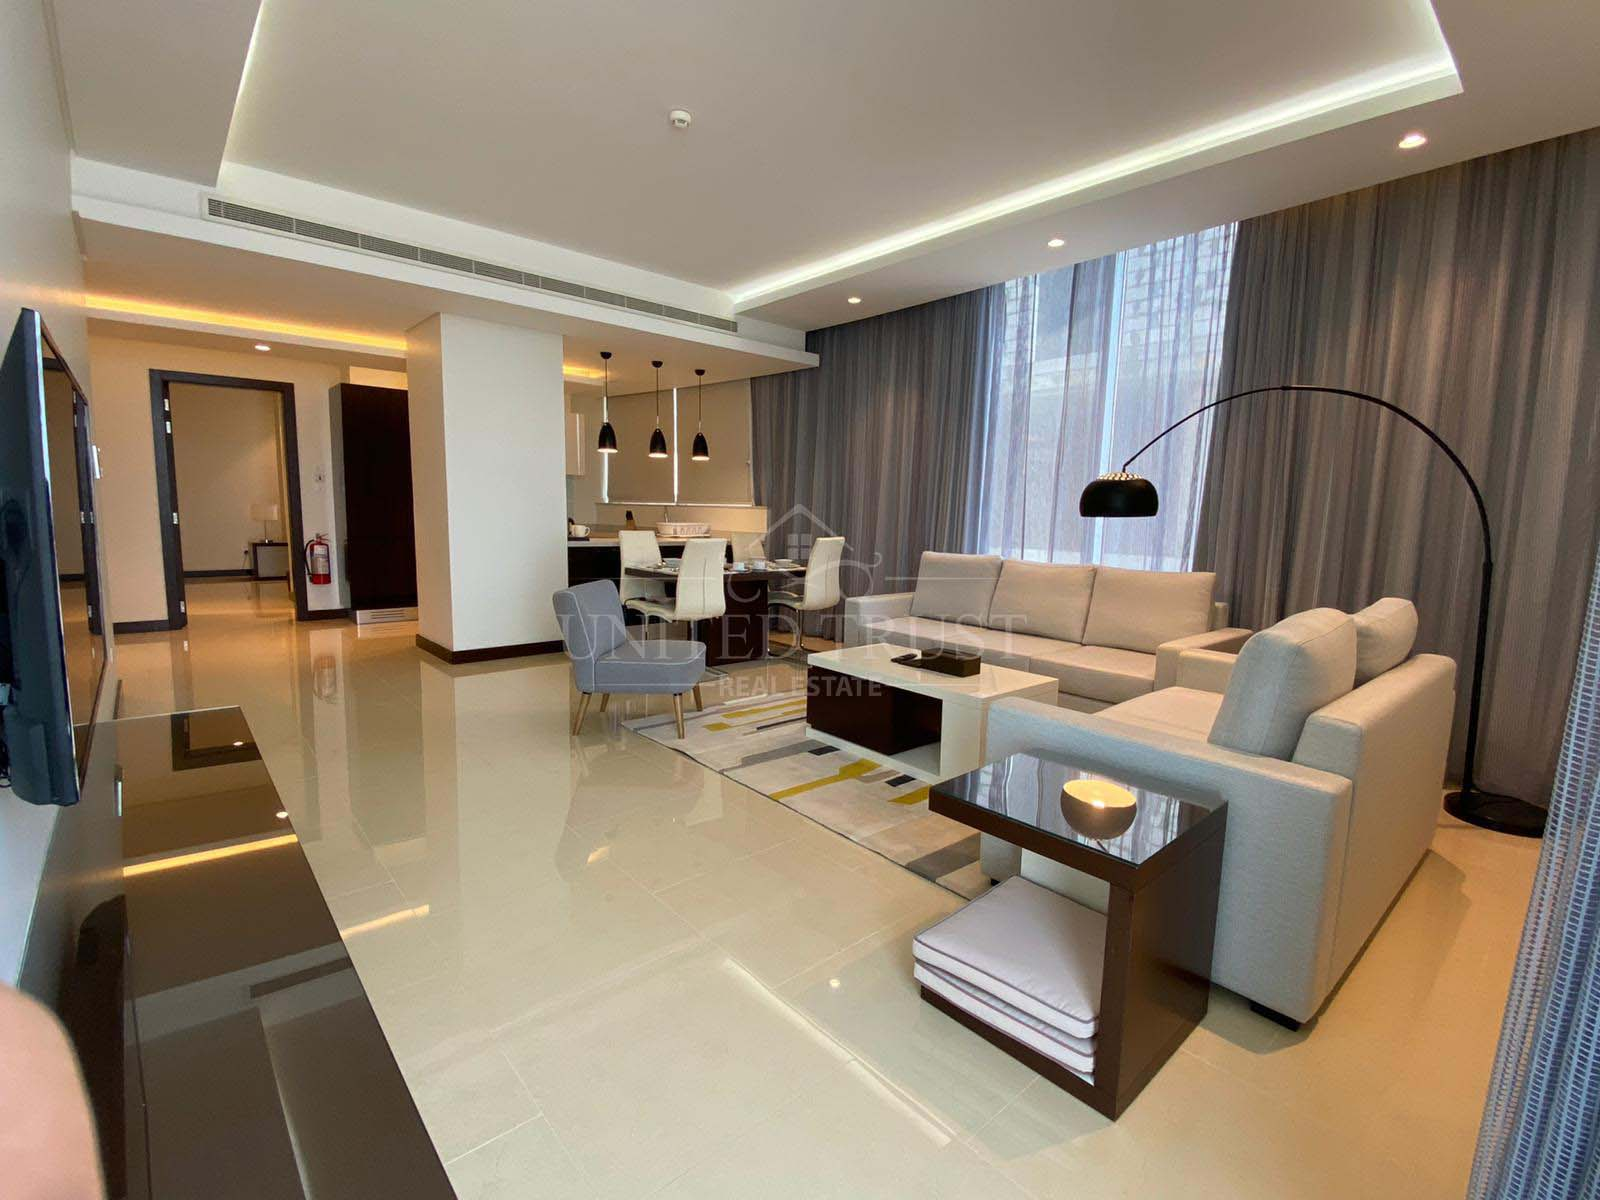 For Rent Luxury Apartment in Hidd Ref: HID-SB-012